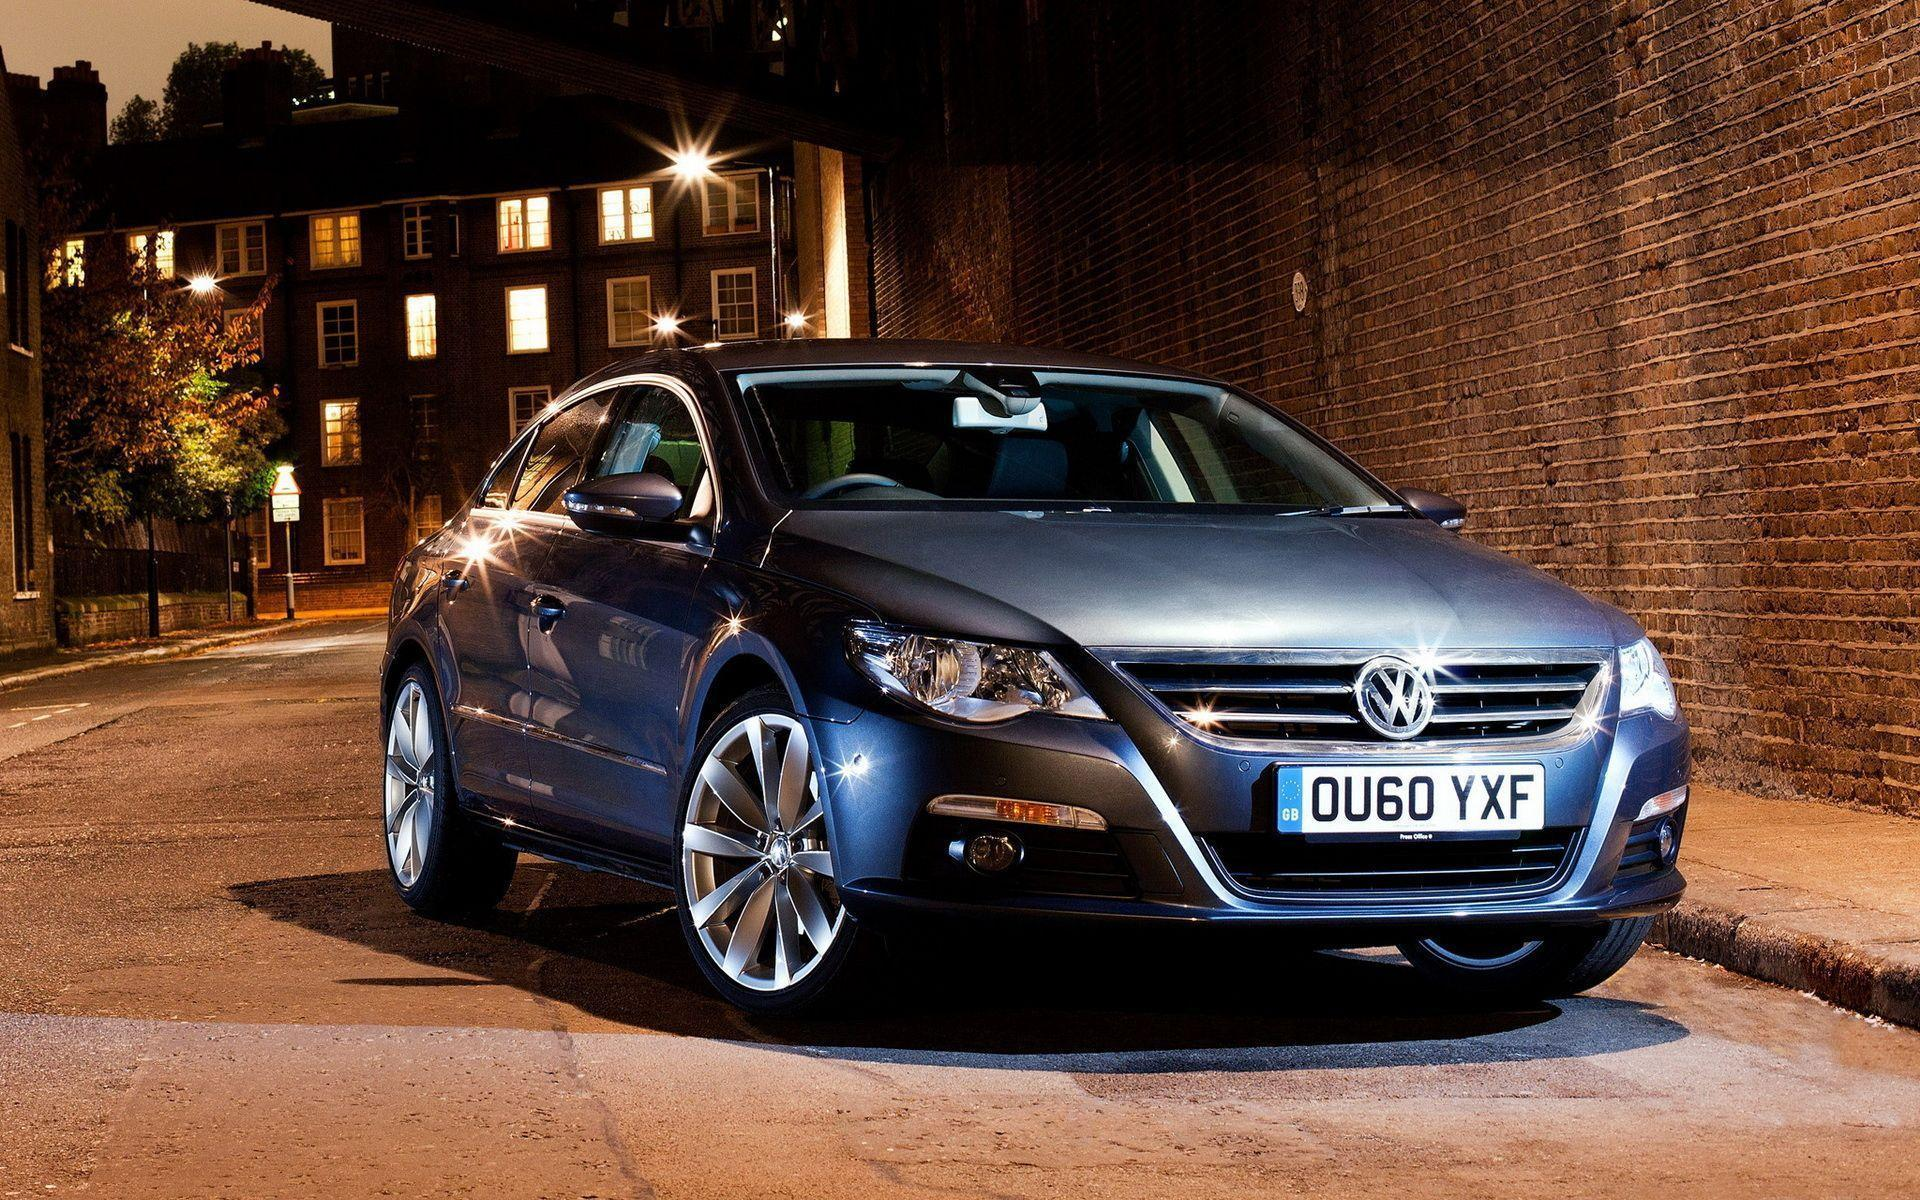 Volkswagen Passat CC wallpapers and images - wallpapers, pictures ...